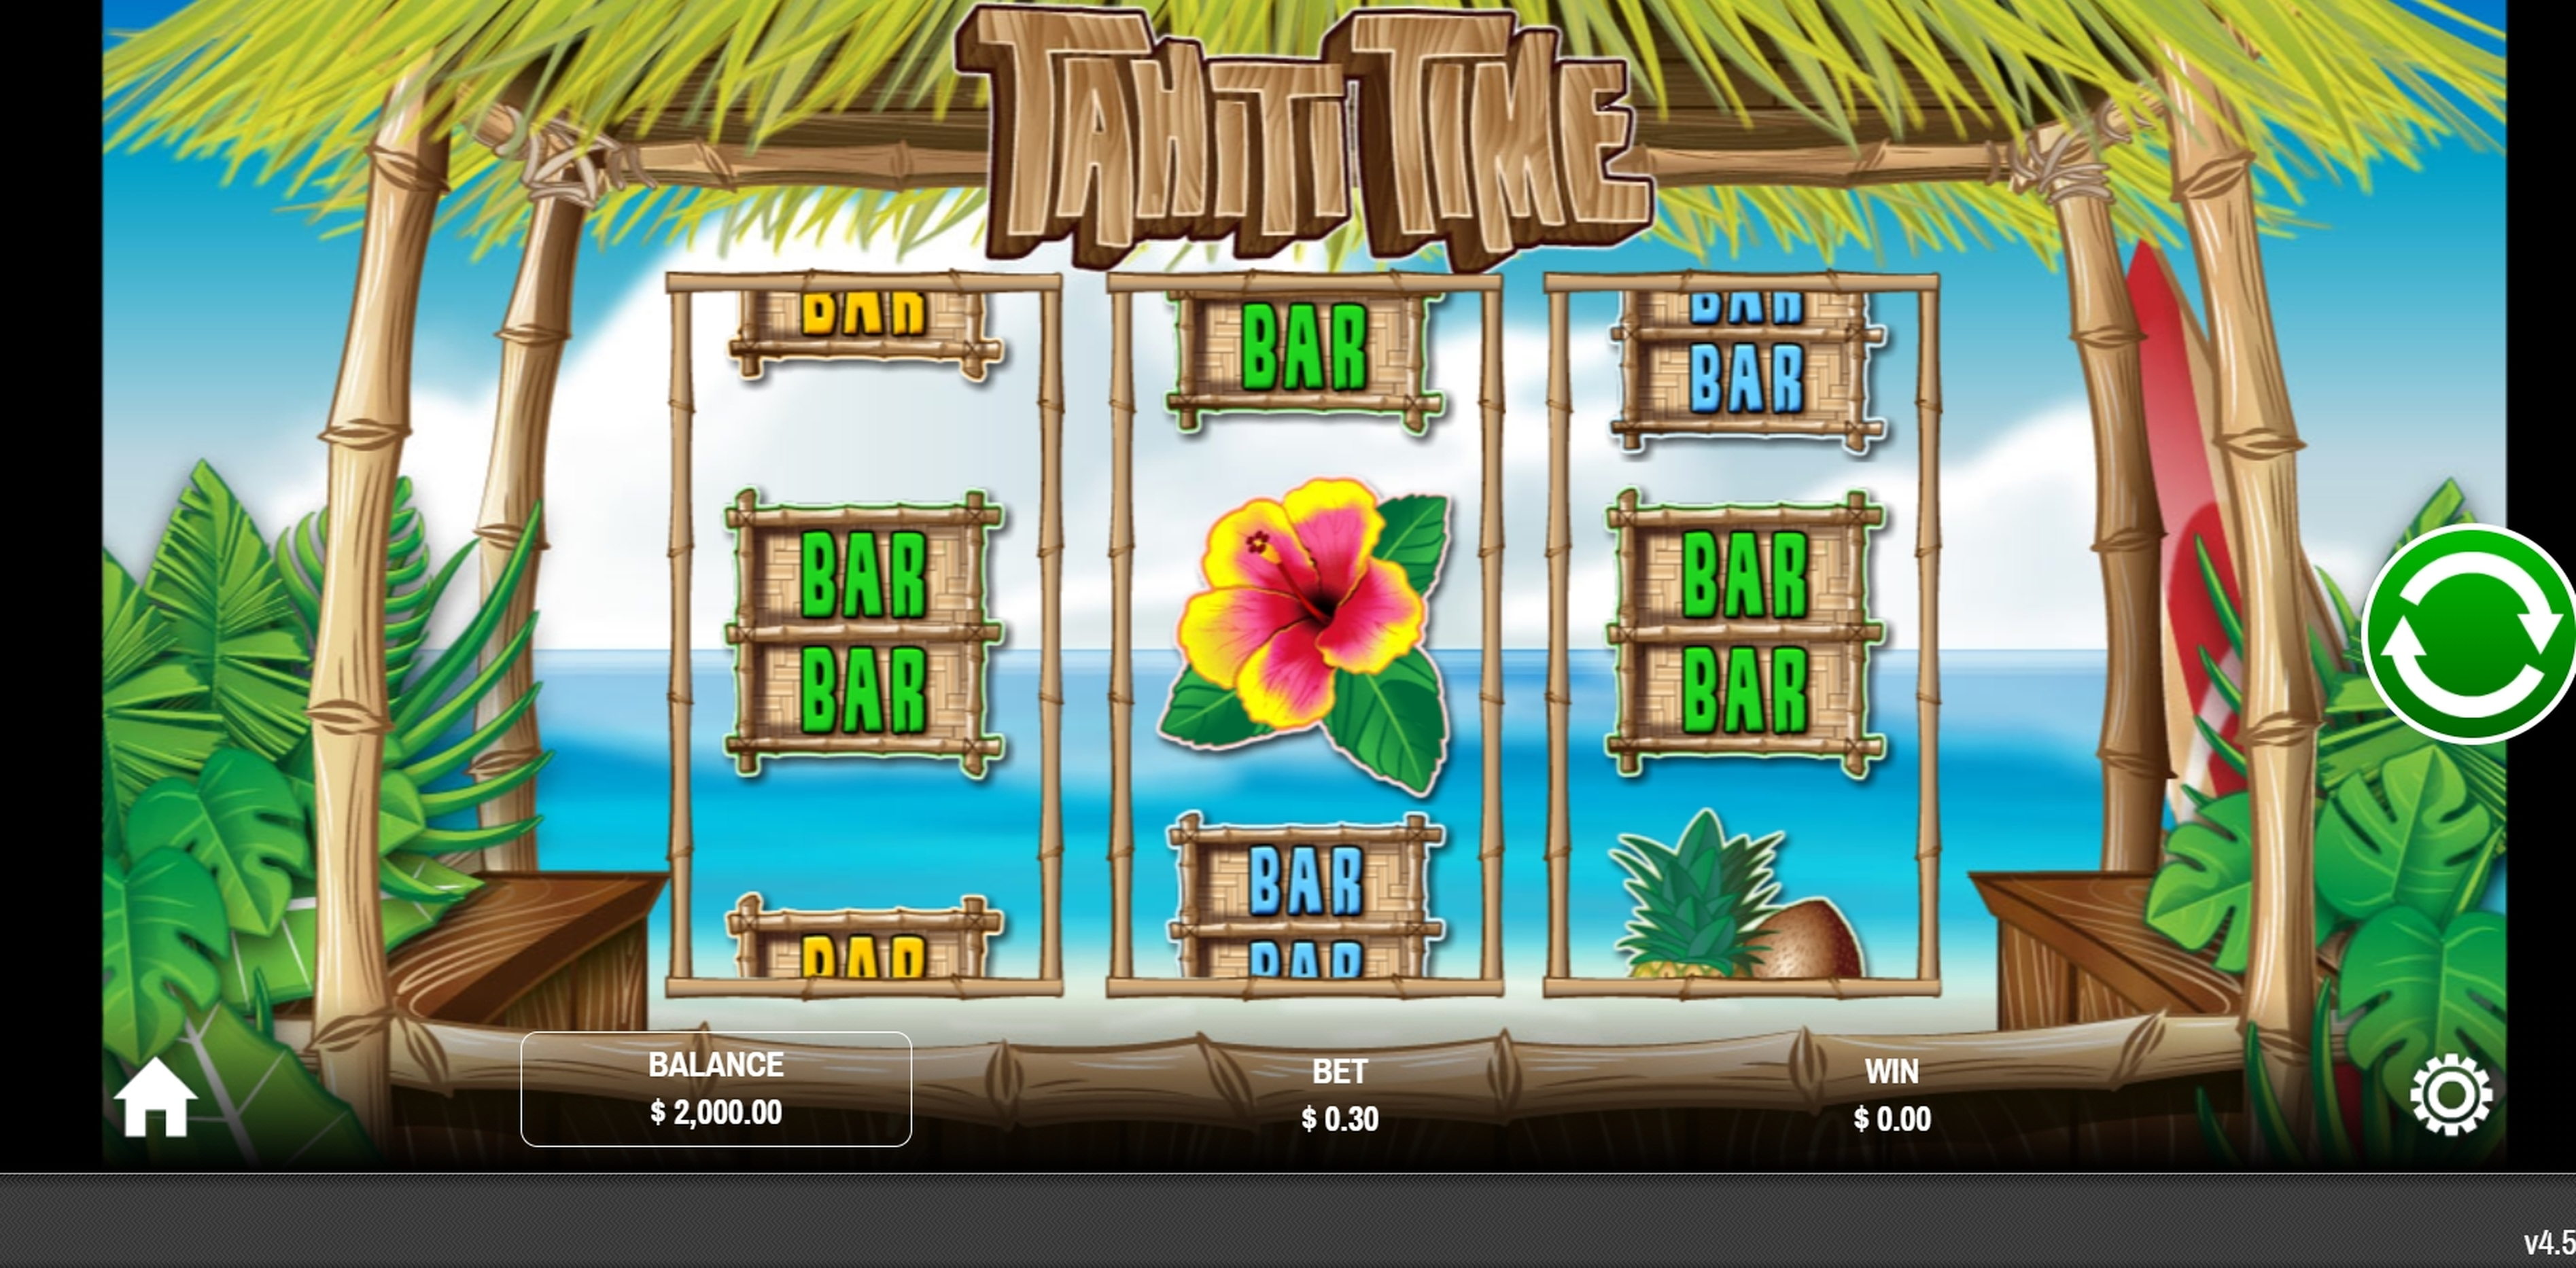 Reels in Tahiti Time Slot Game by Rival